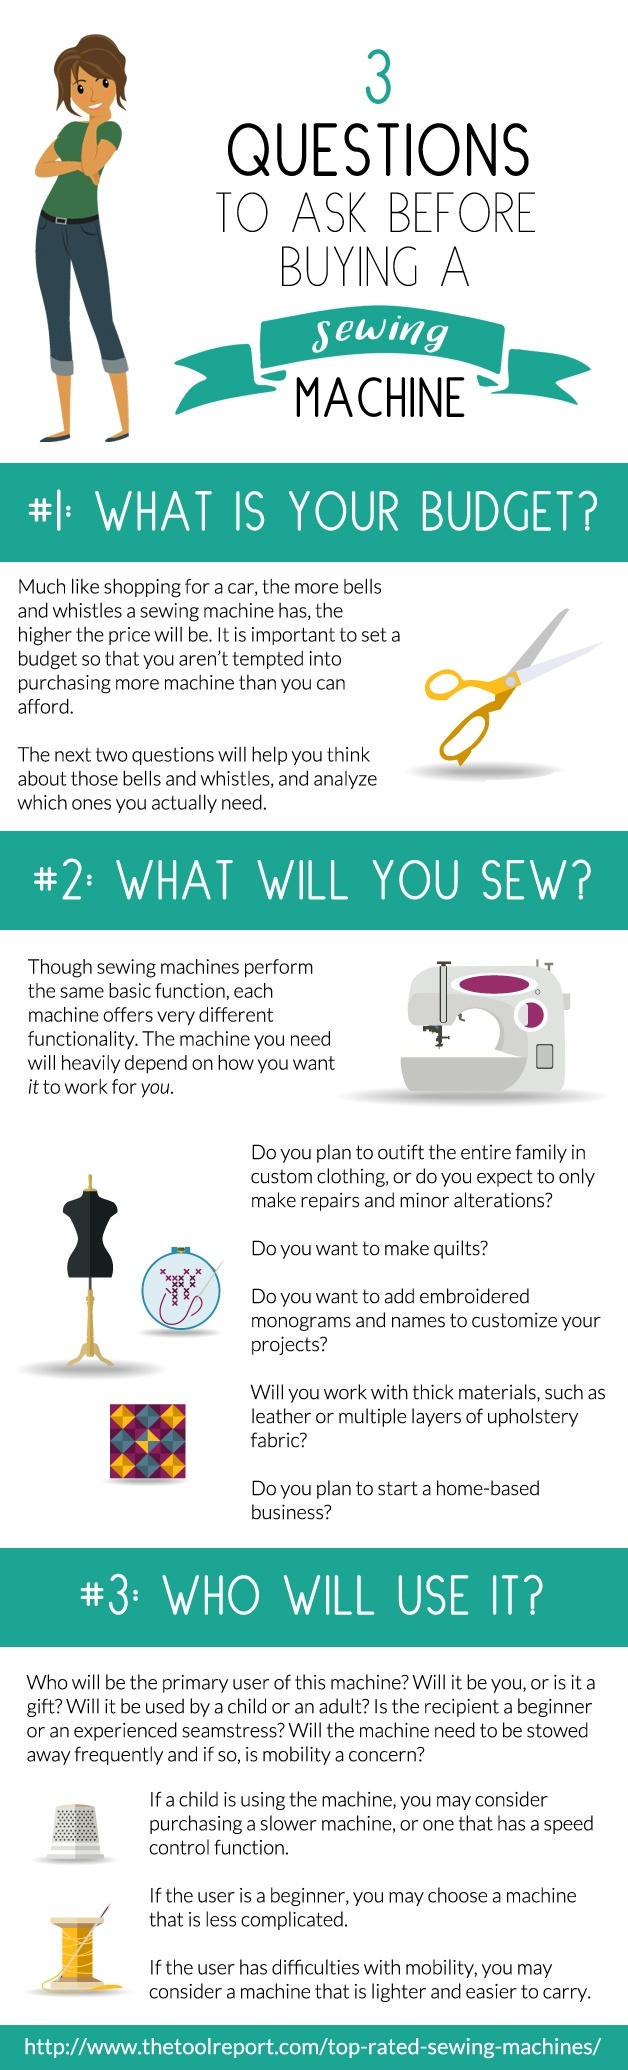 best sewing machine reviews for 2018 seamstress picks top brands